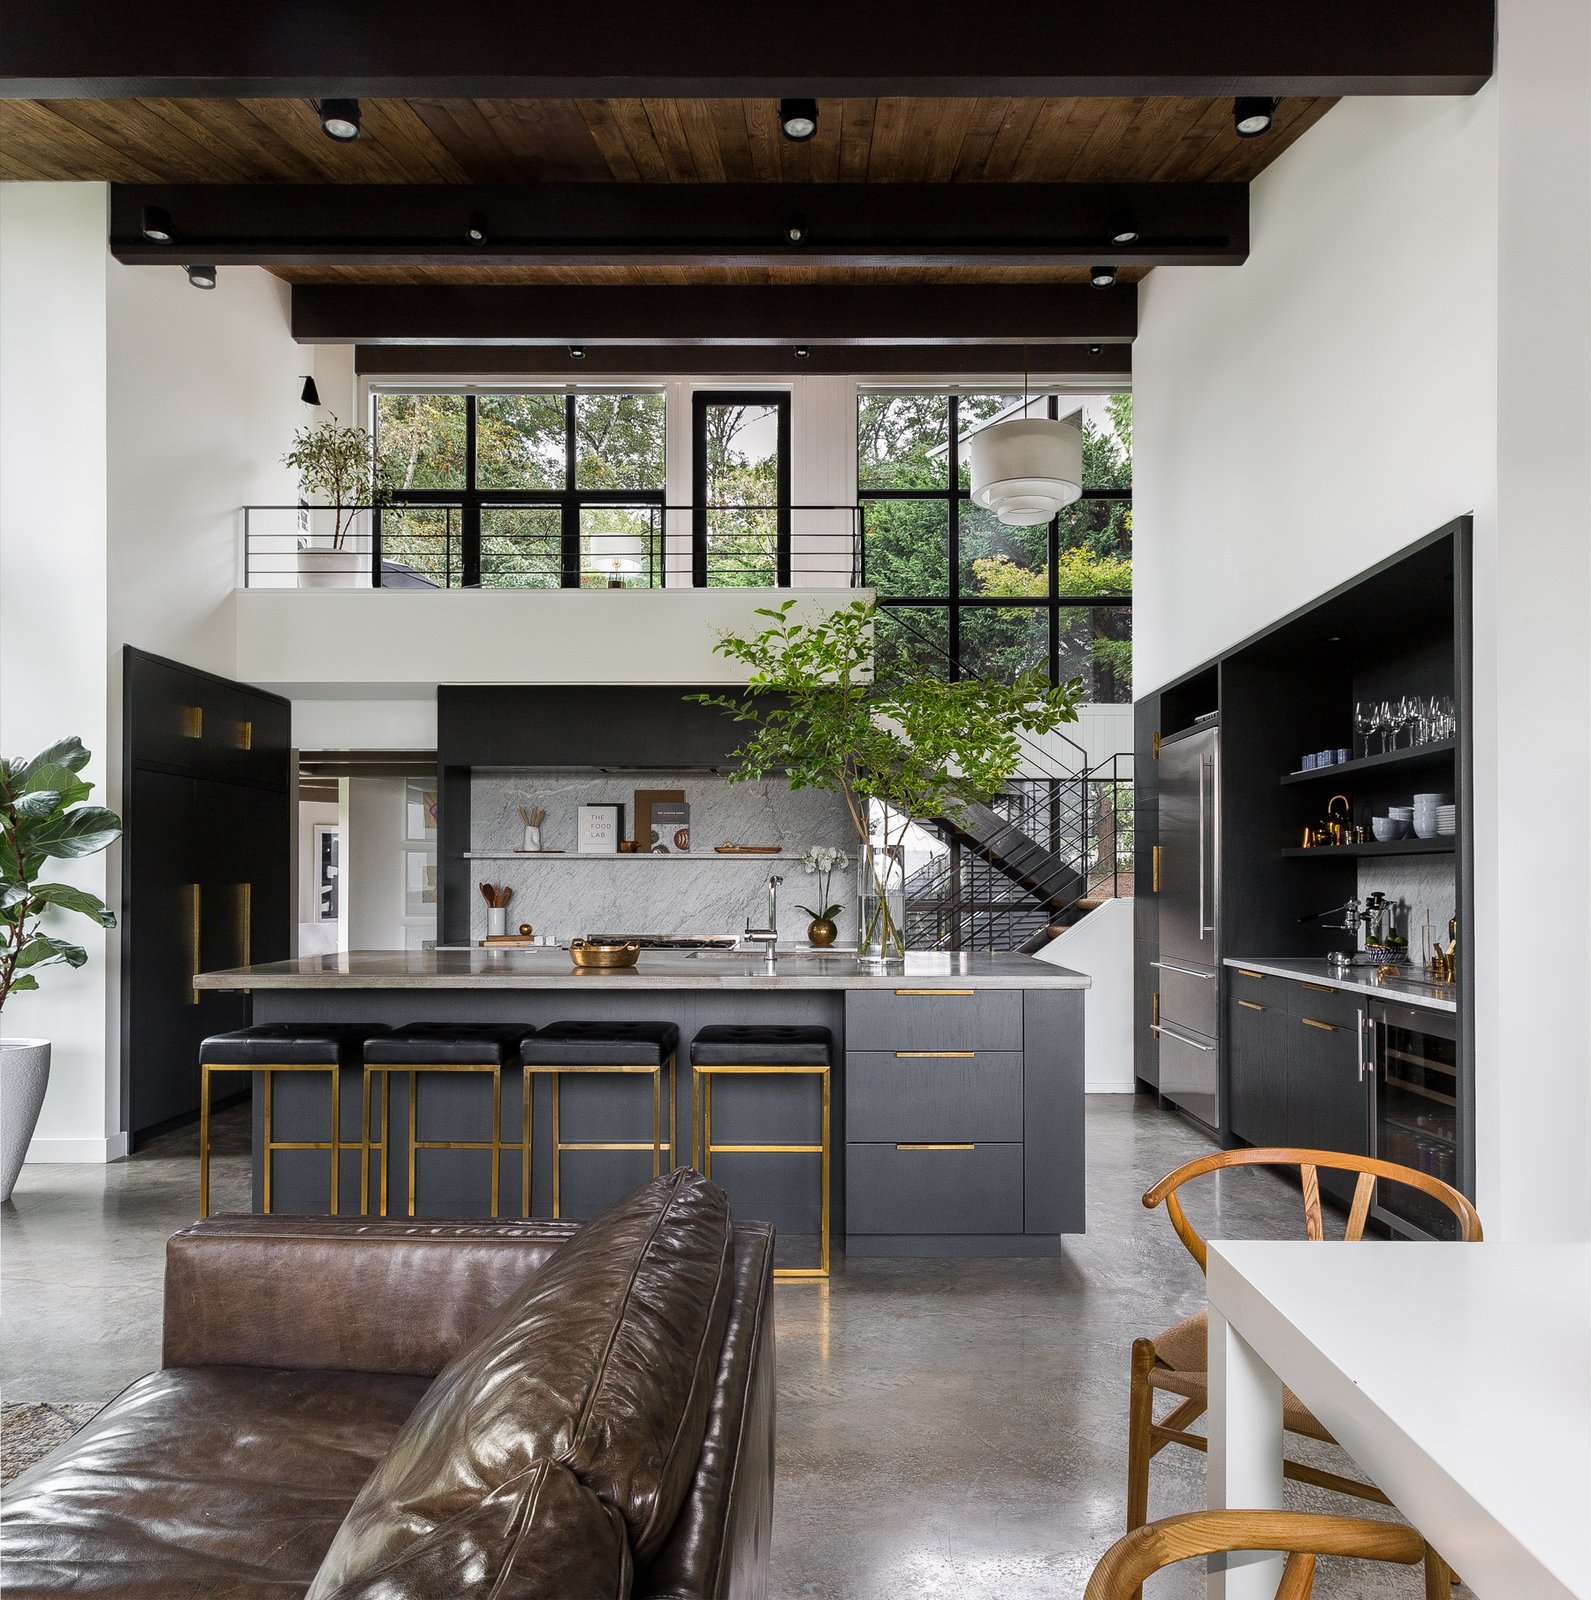 Montlake House kitchen with black steel stairway and concrete floors